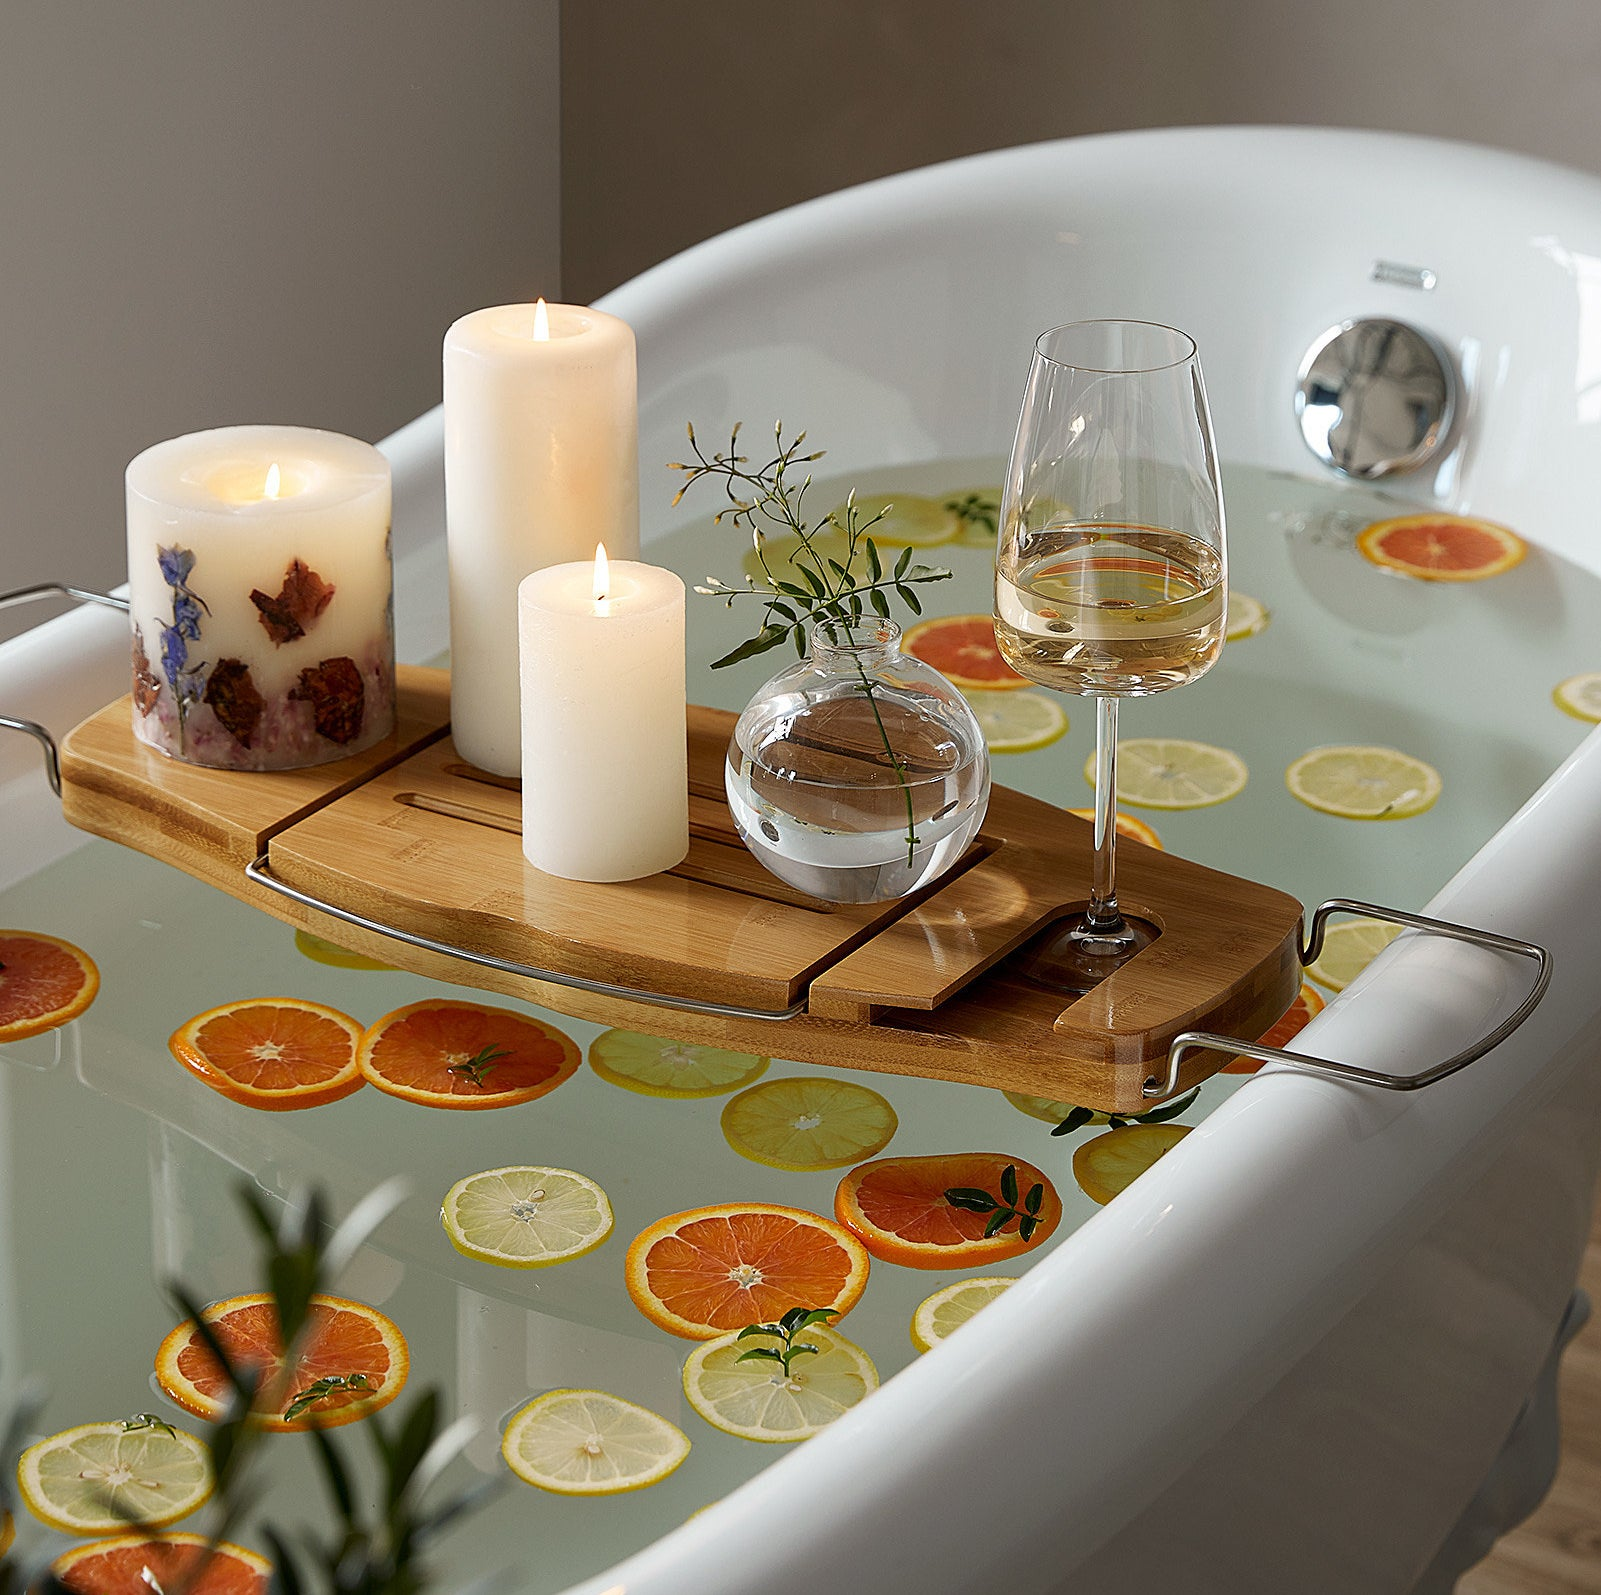 a tub filled with citrus slices with the tub tray on top holding candles and wine